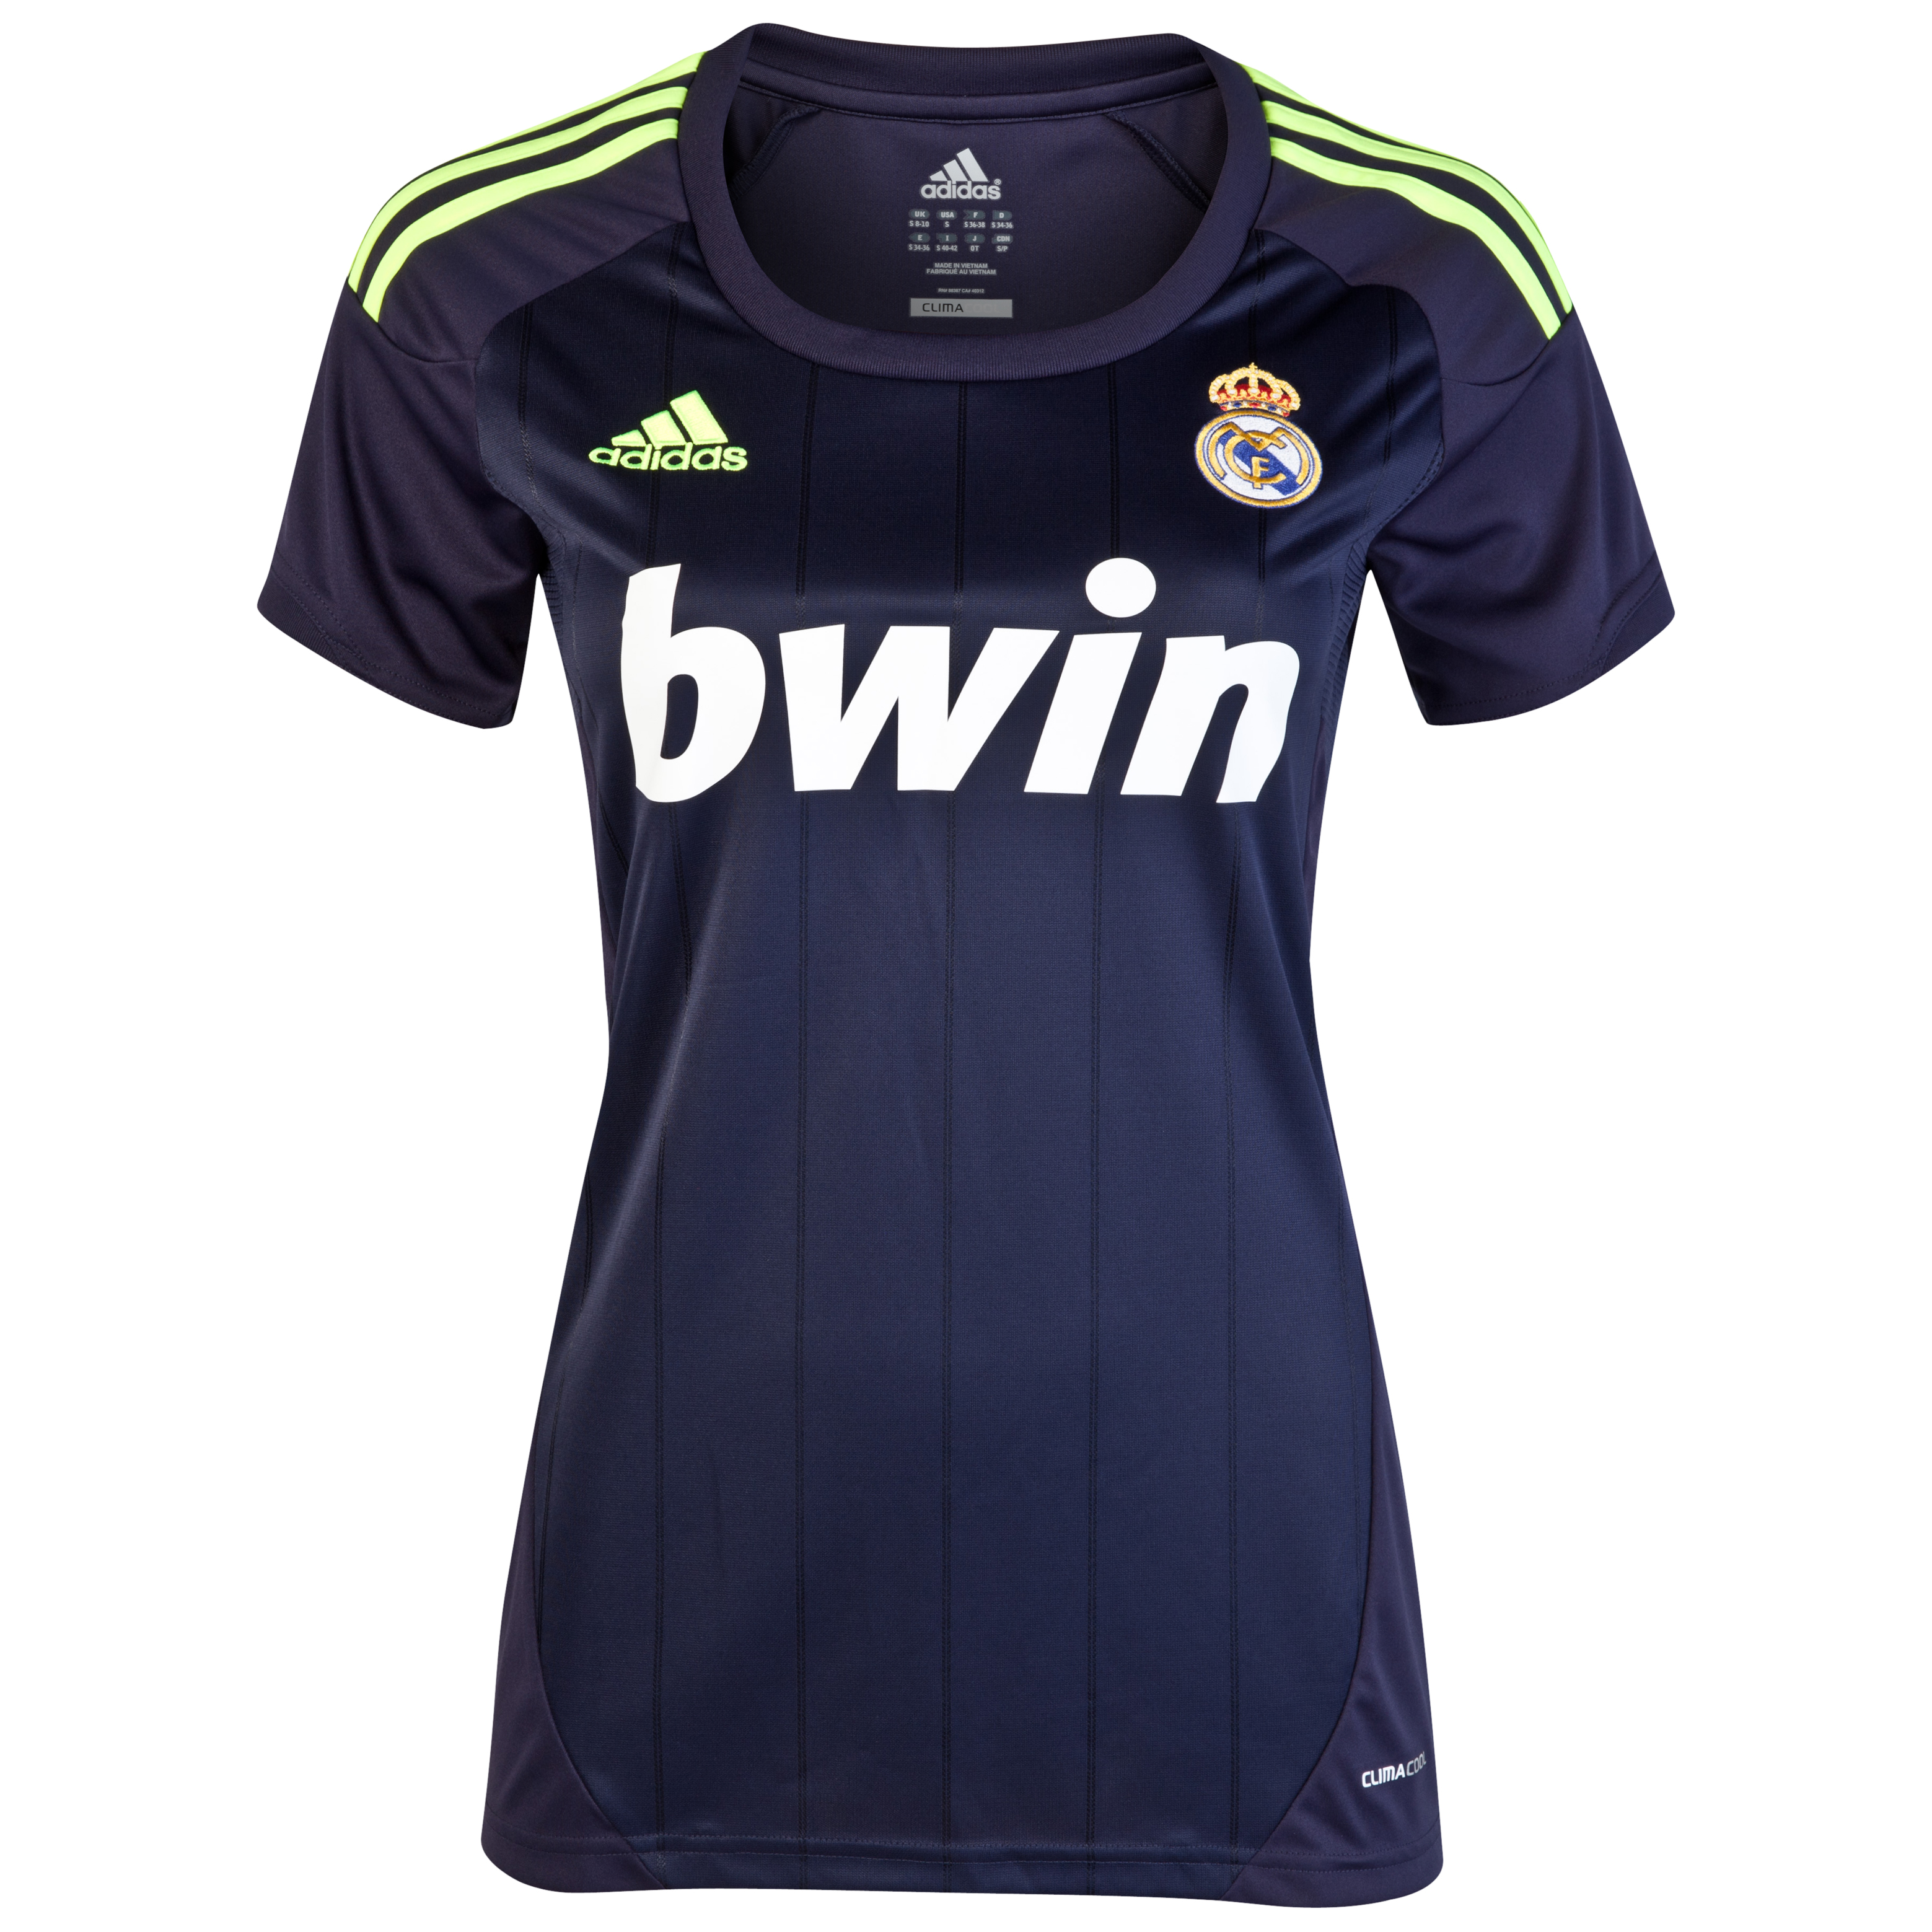 Real Madrid Away Shirt 2012/13 Womens